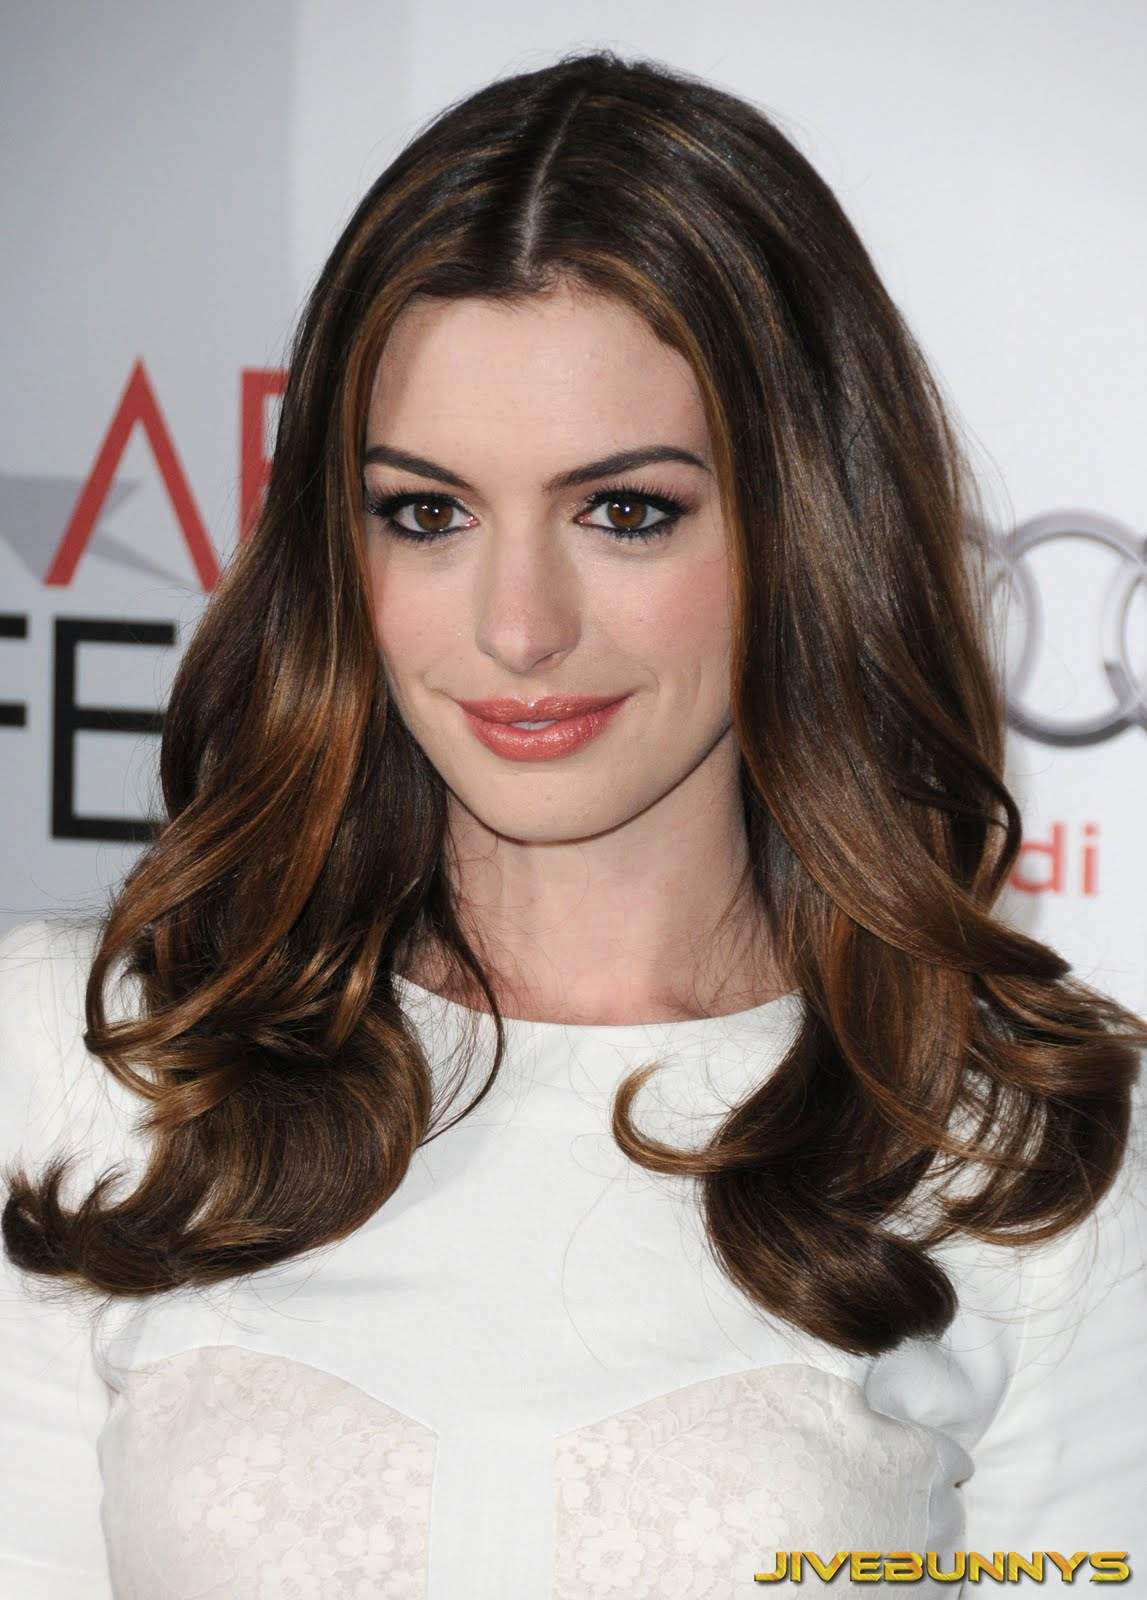 Anne Hathaway special pictures (2) | Film Actresses Anne Hathaway